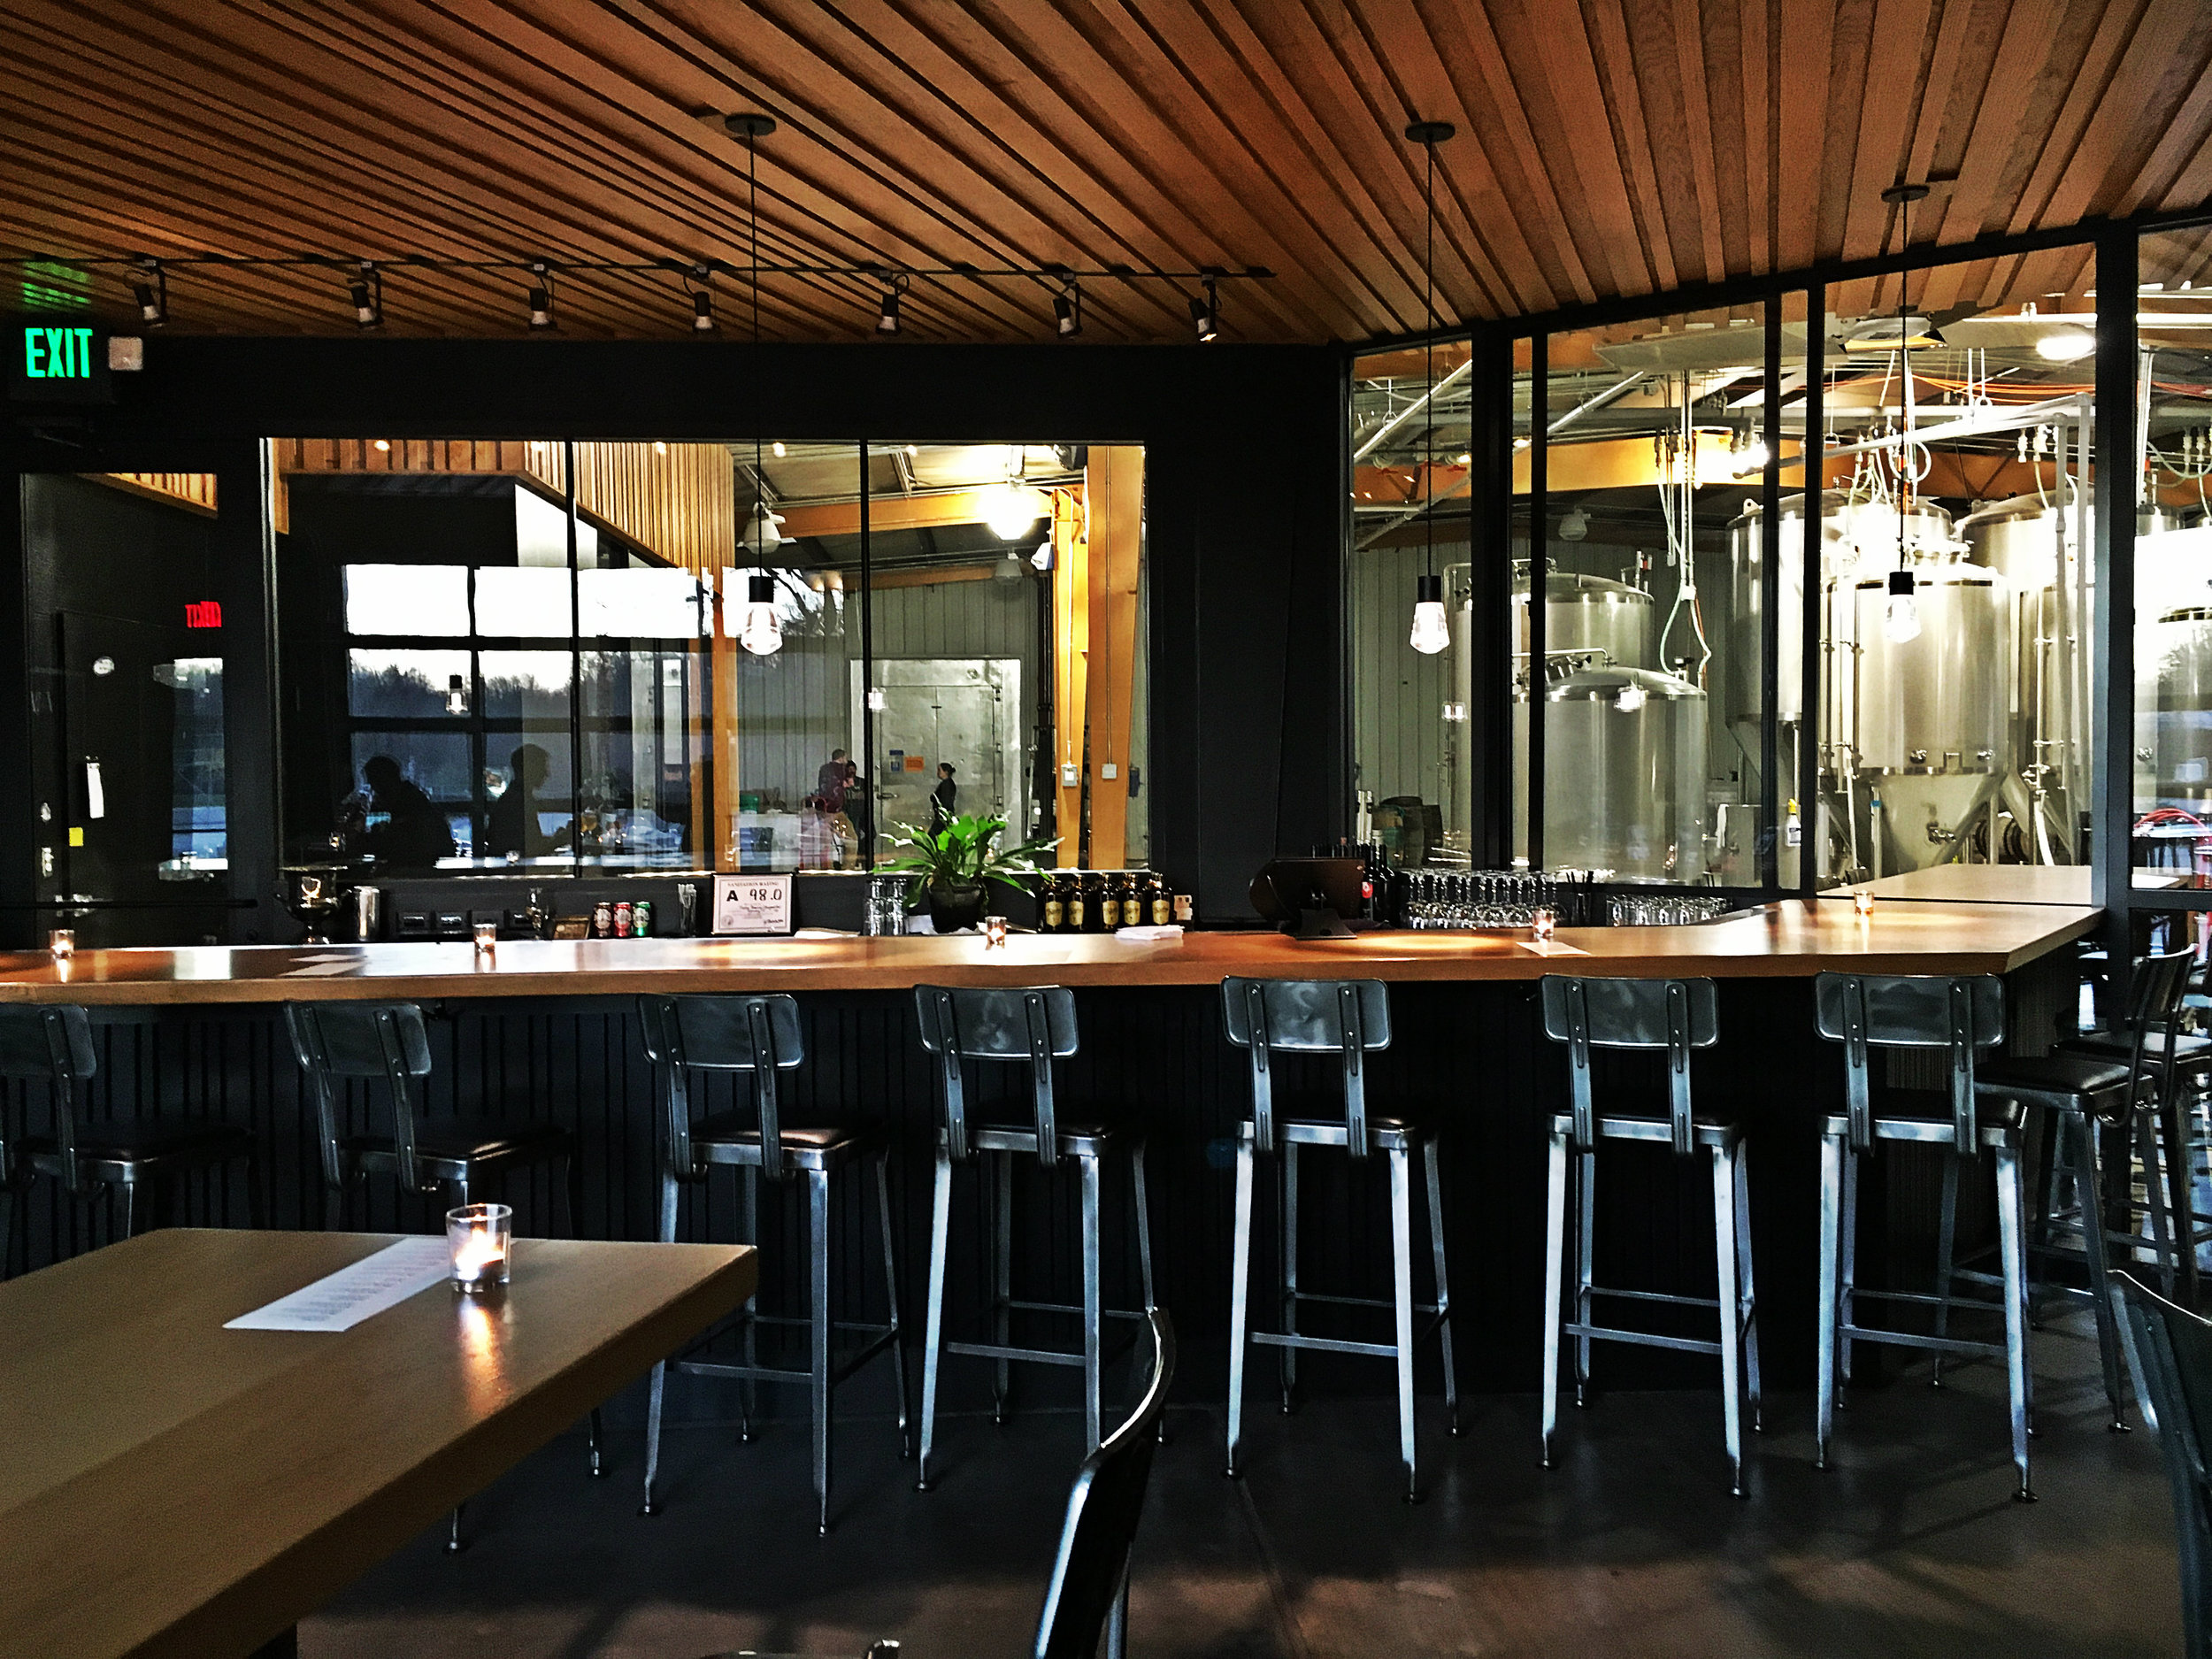 Taproom bar with views into the brewery beyond.